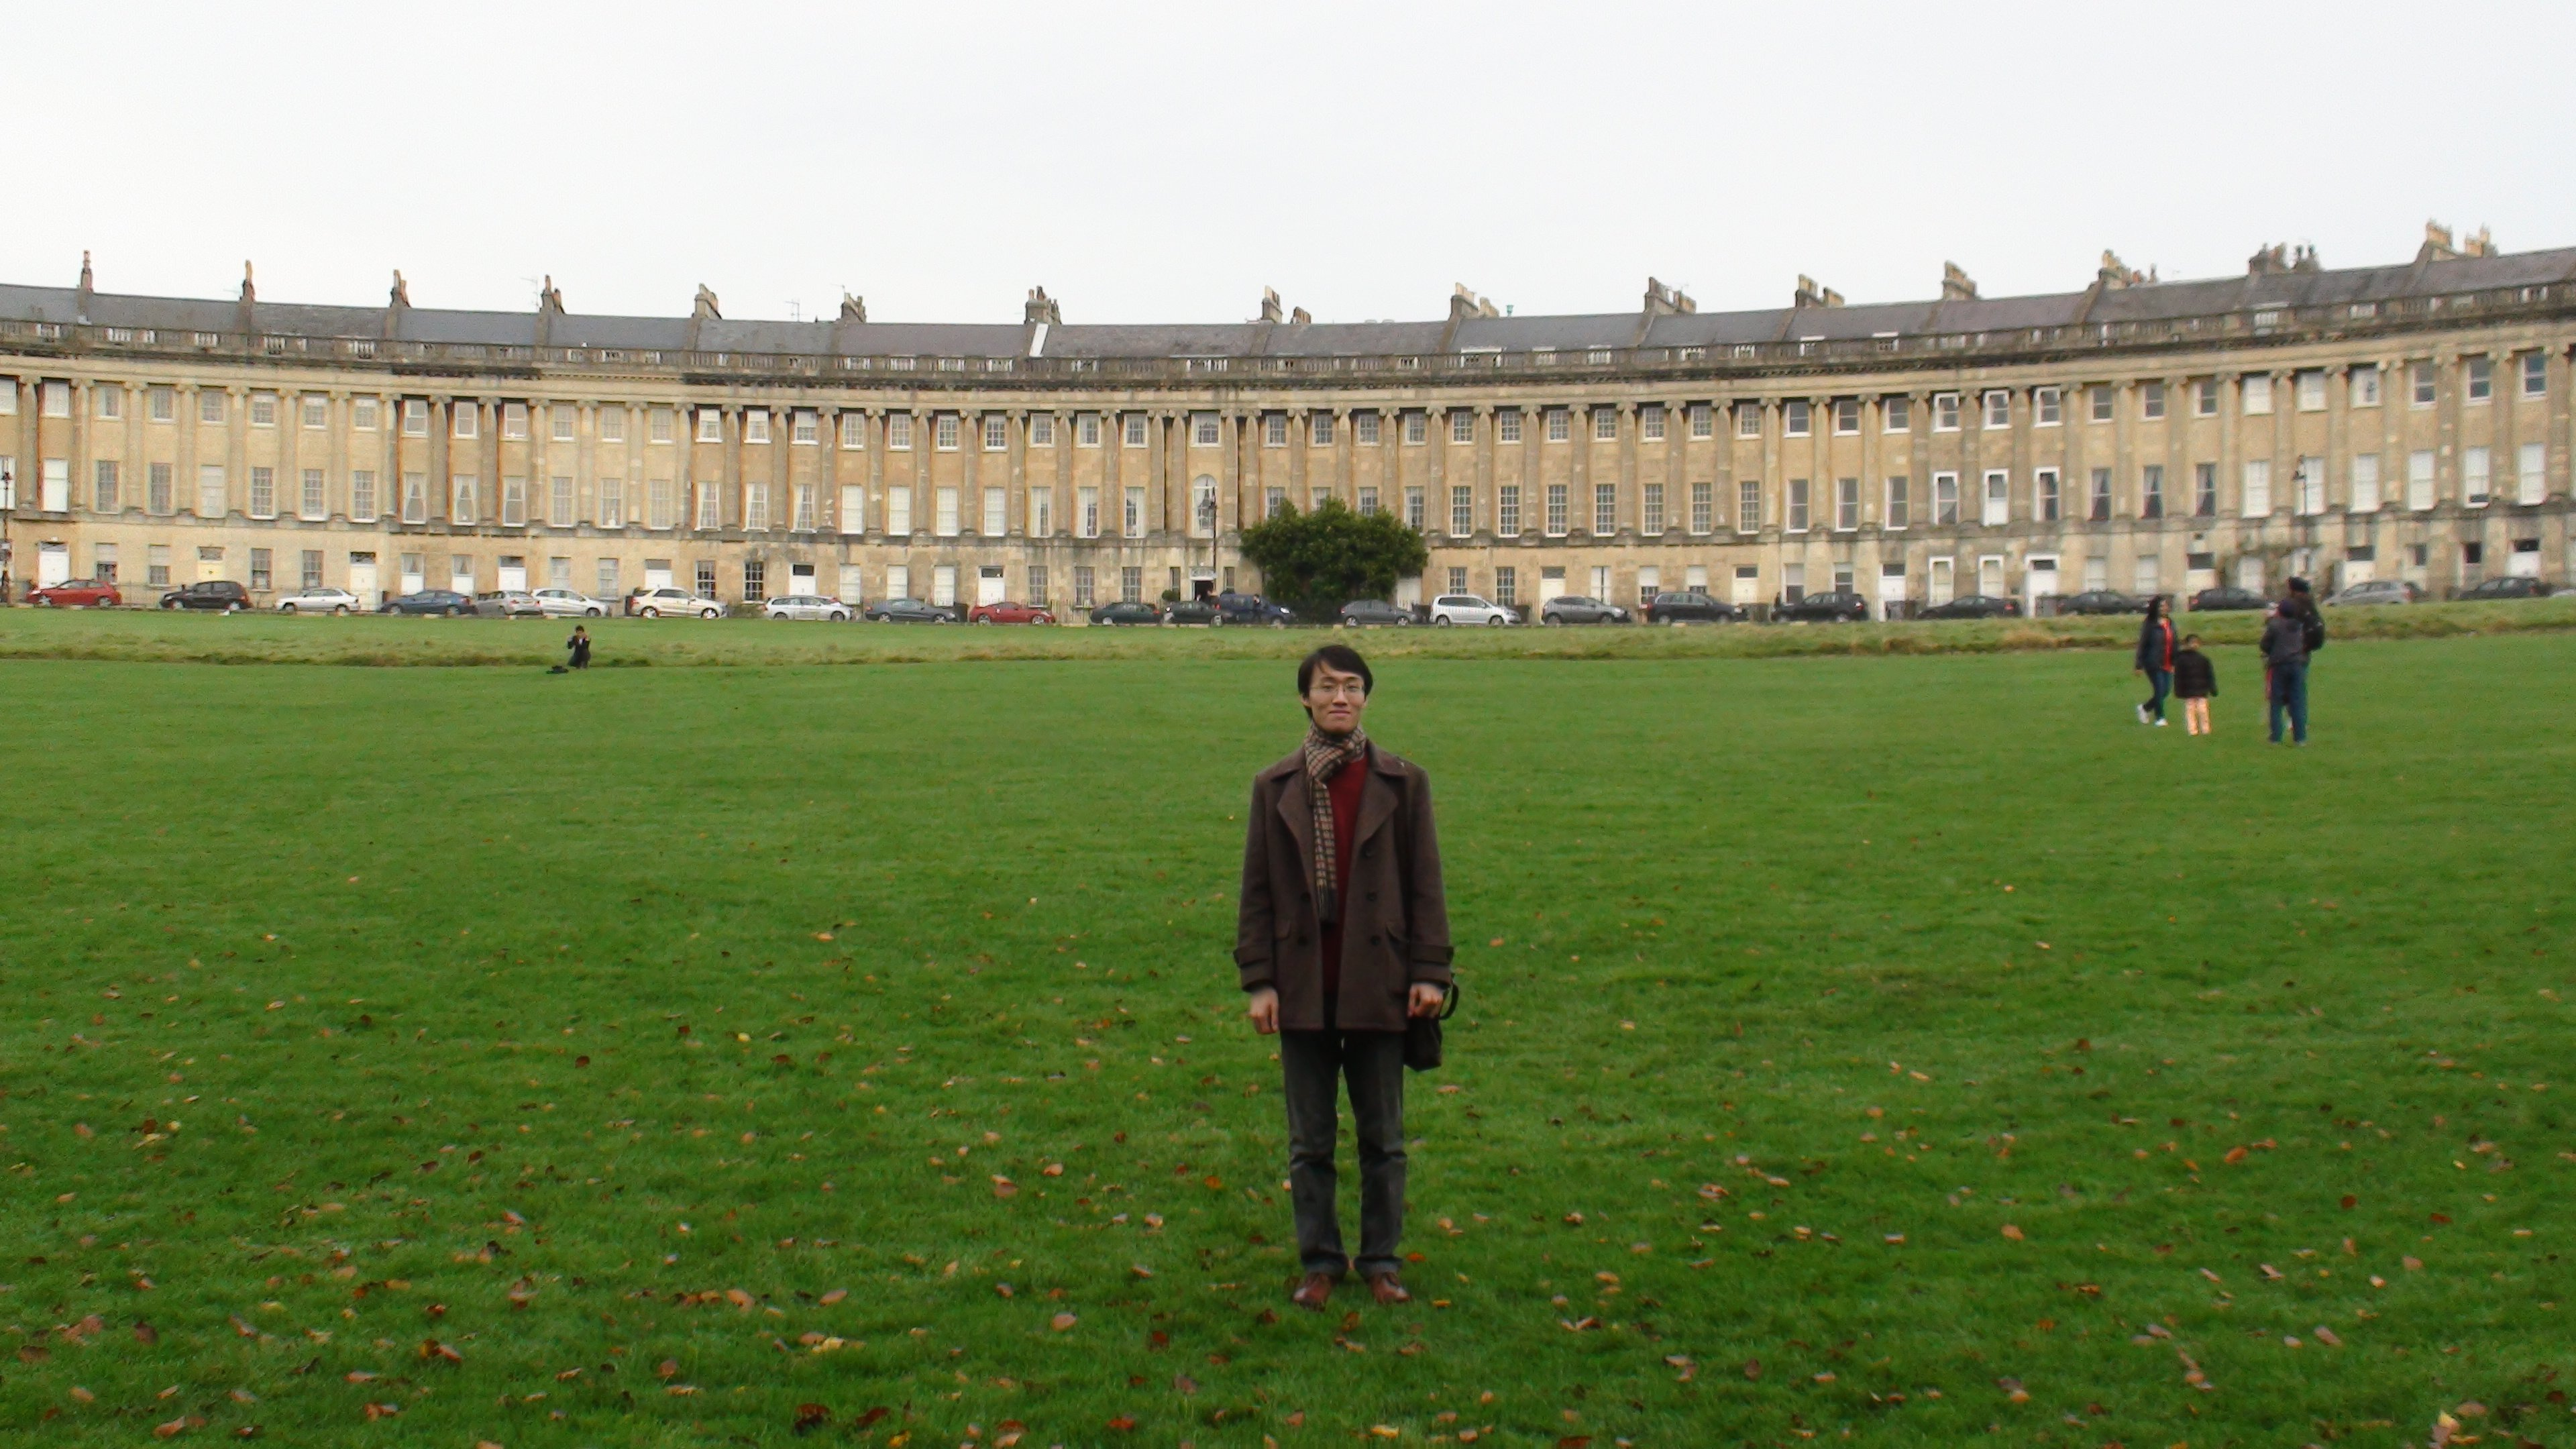 Me in Bath,UK